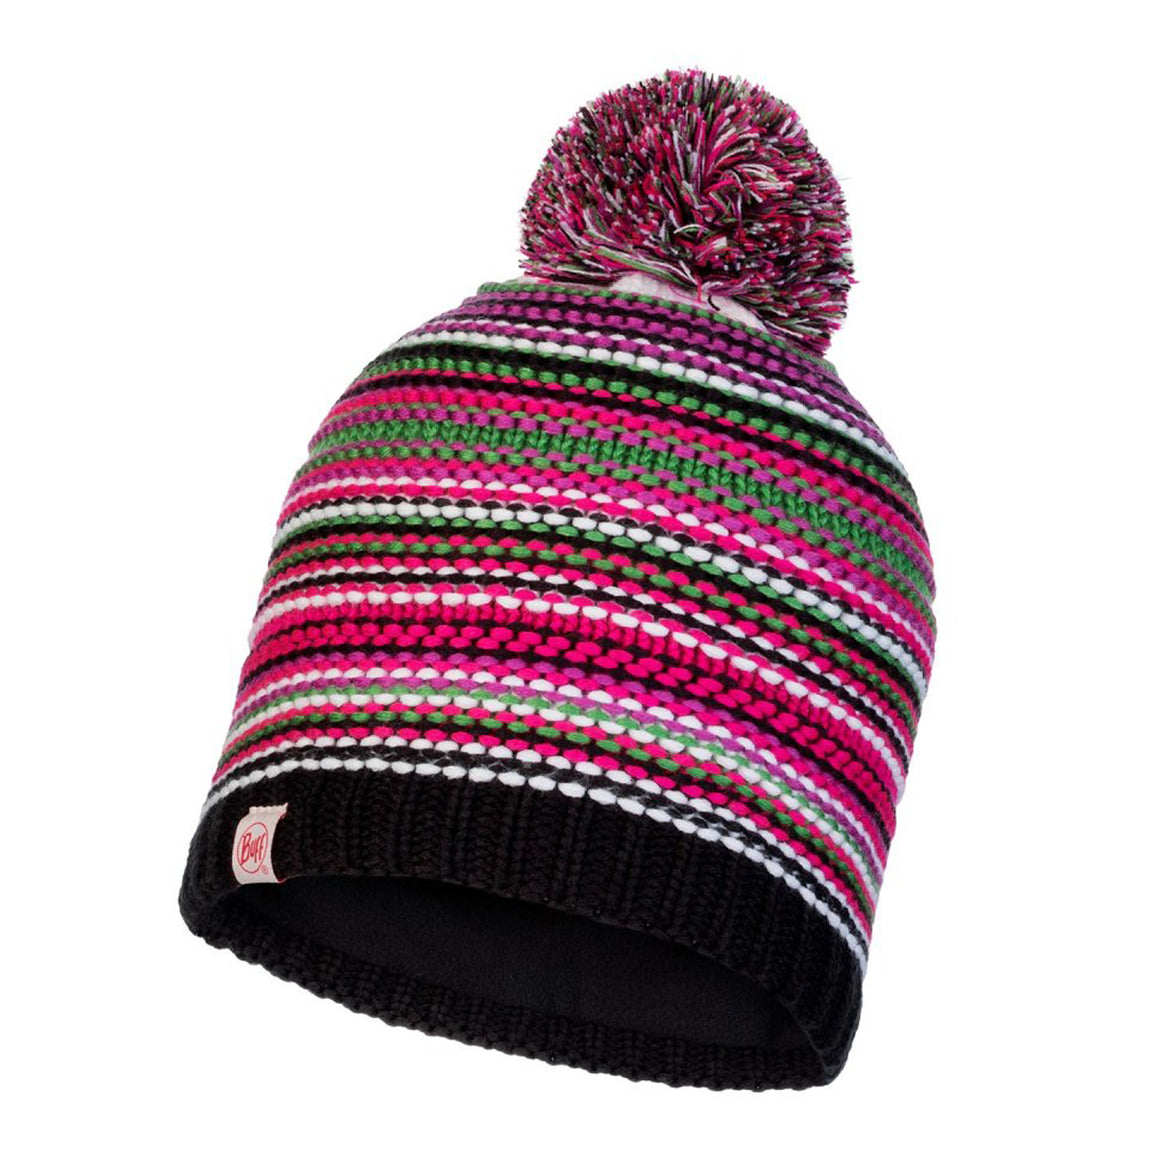 Amity Hat for Kids in Multi